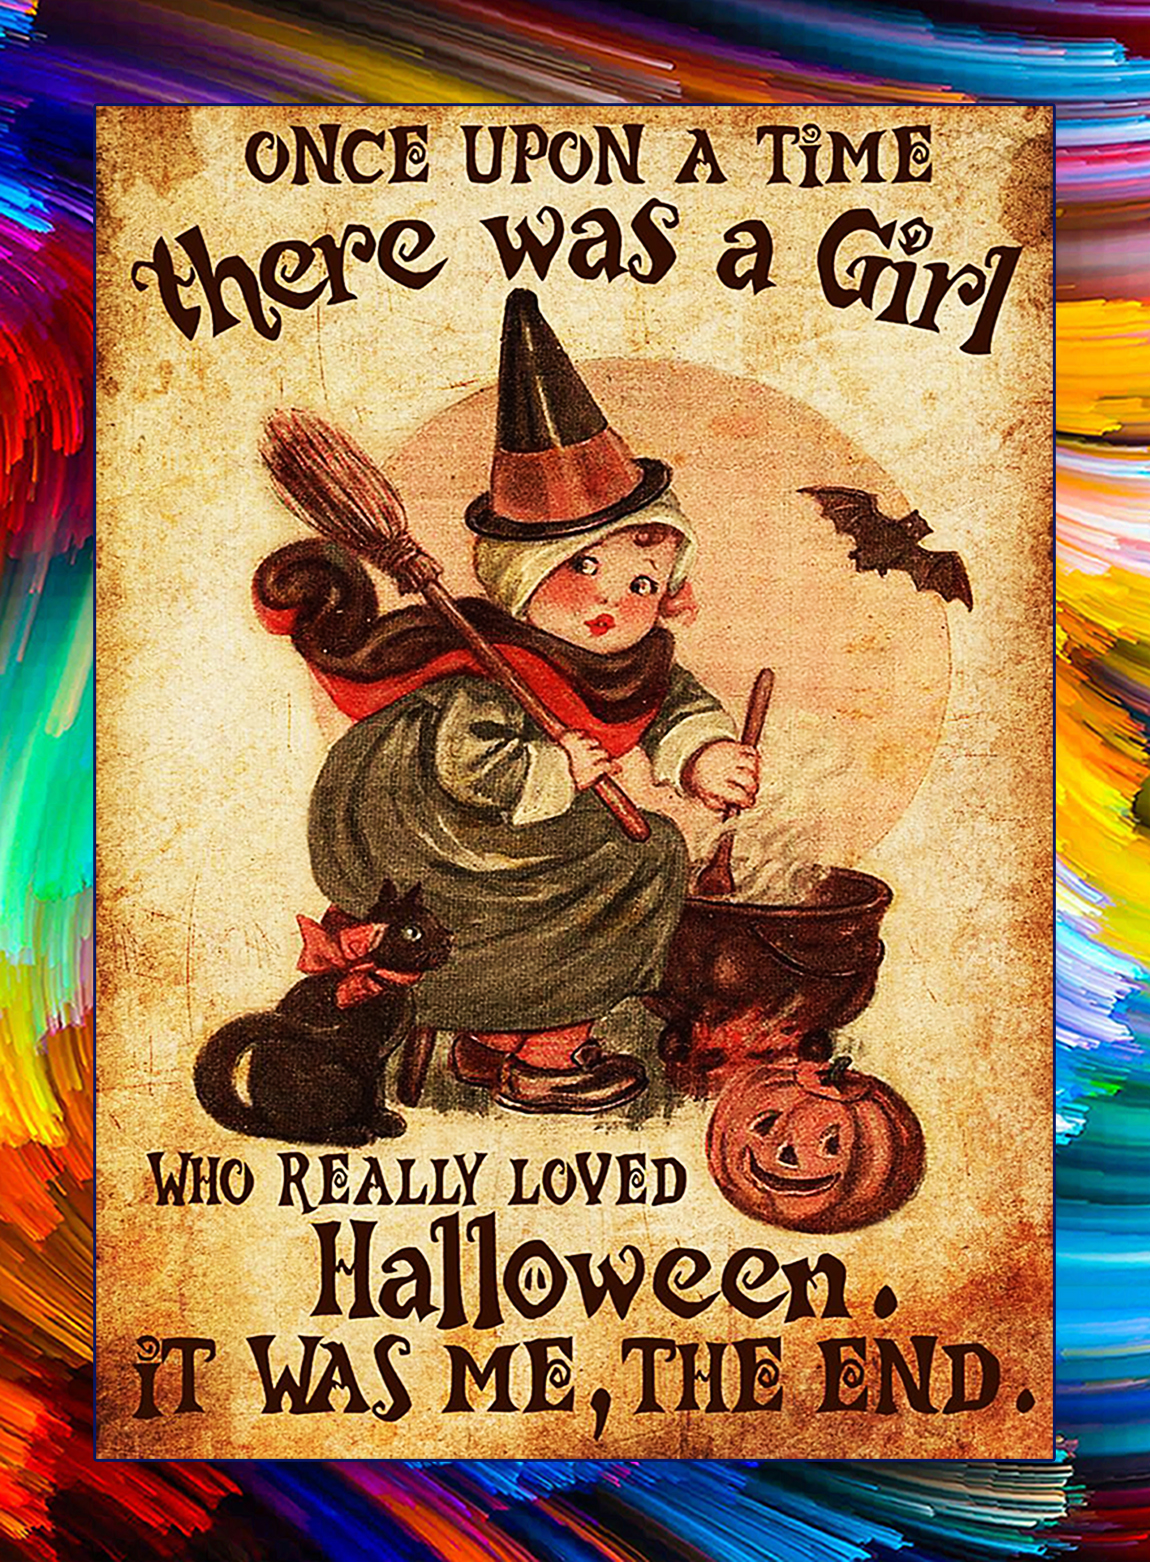 There was a girl who really loved halloween poster - A3